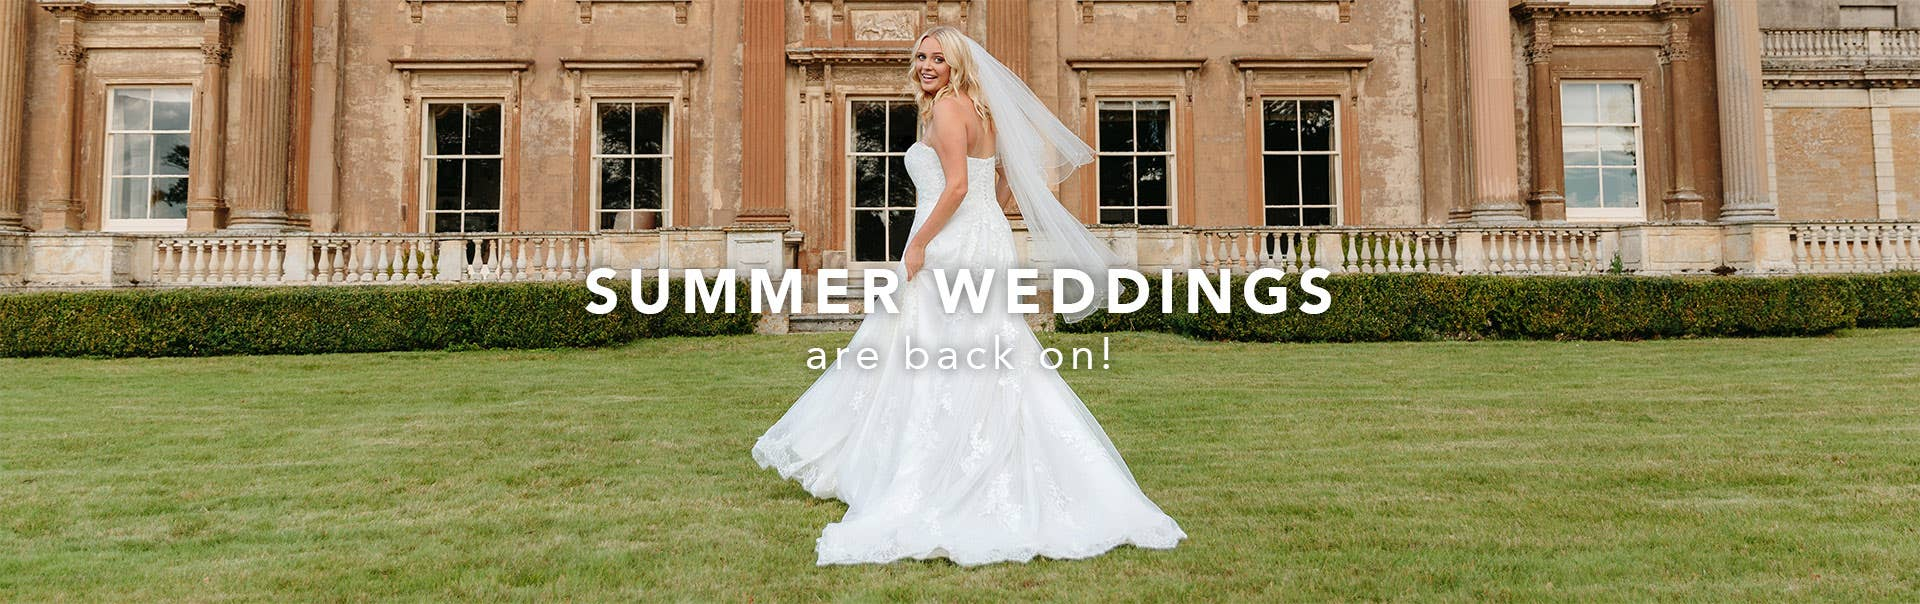 Having a summer wedding?